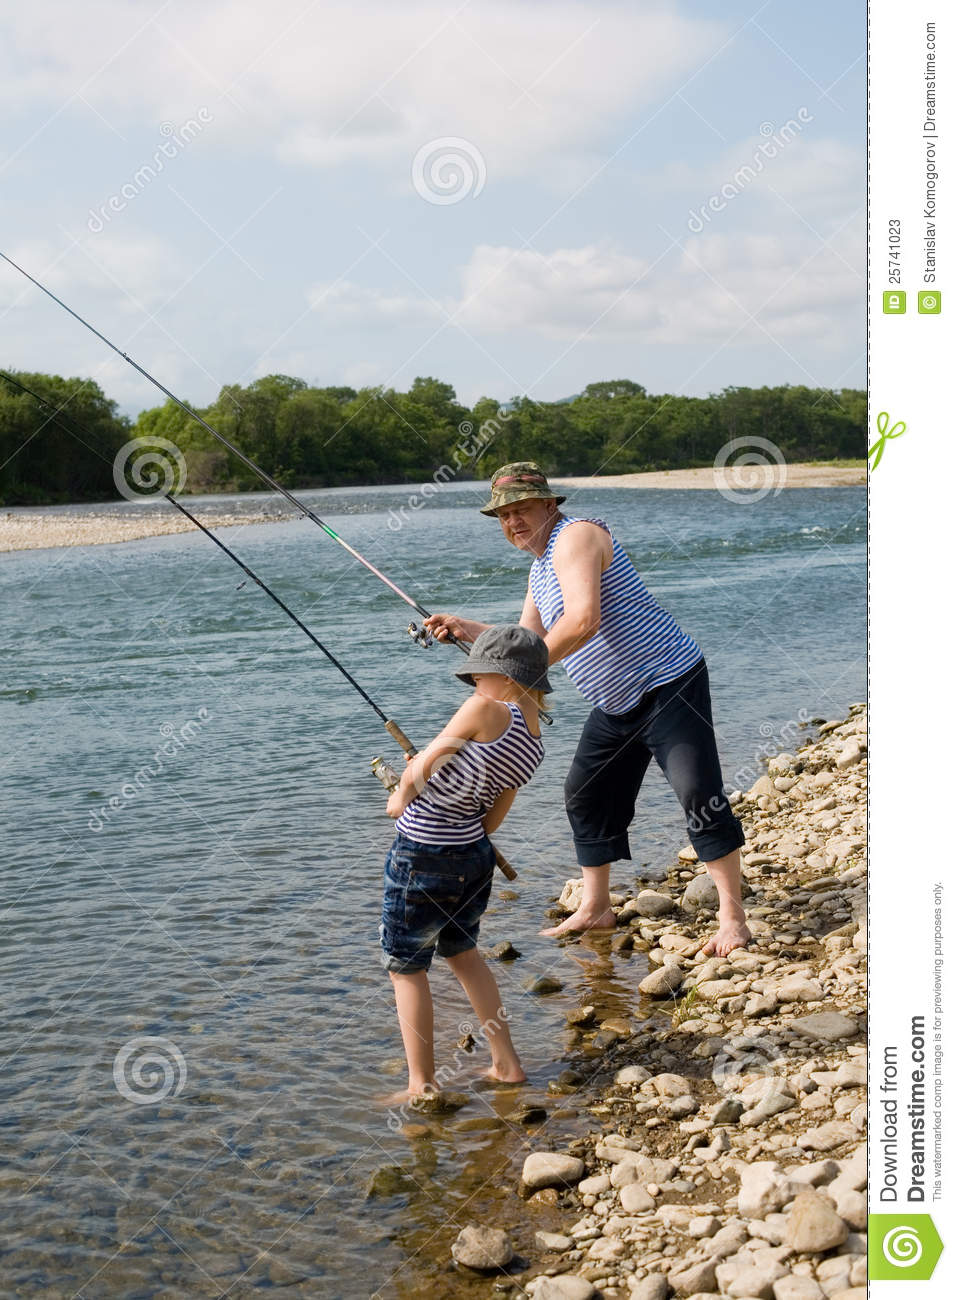 Grandfather and grandson fishing